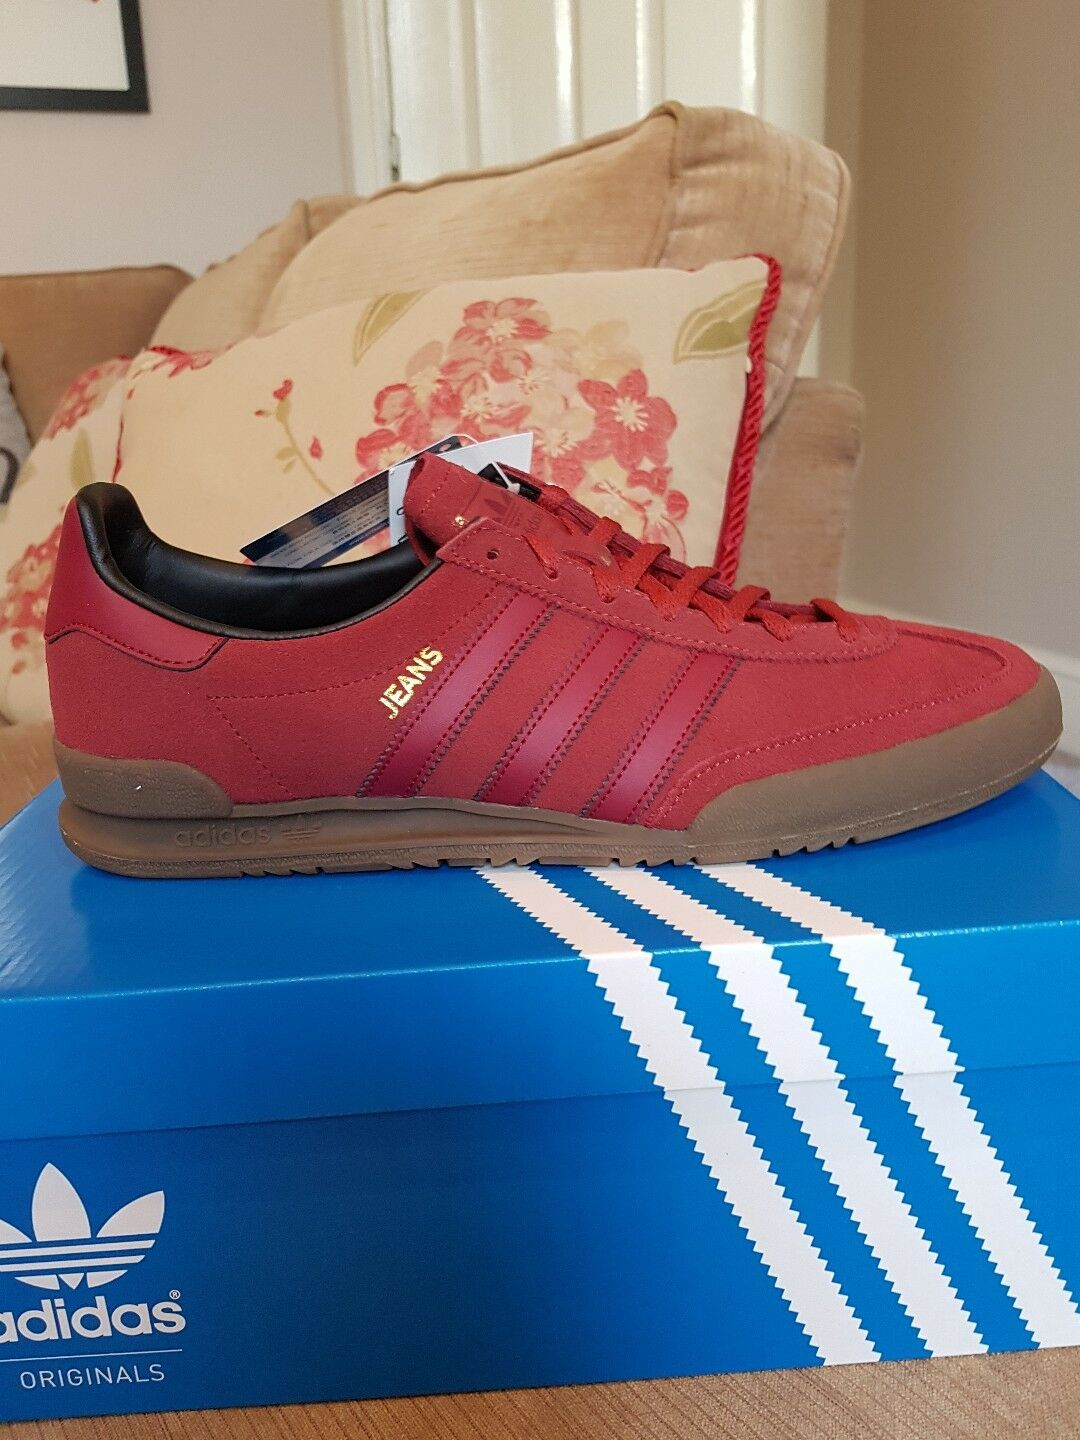 Adidas Original Jeans Baskets Taille 11 UK